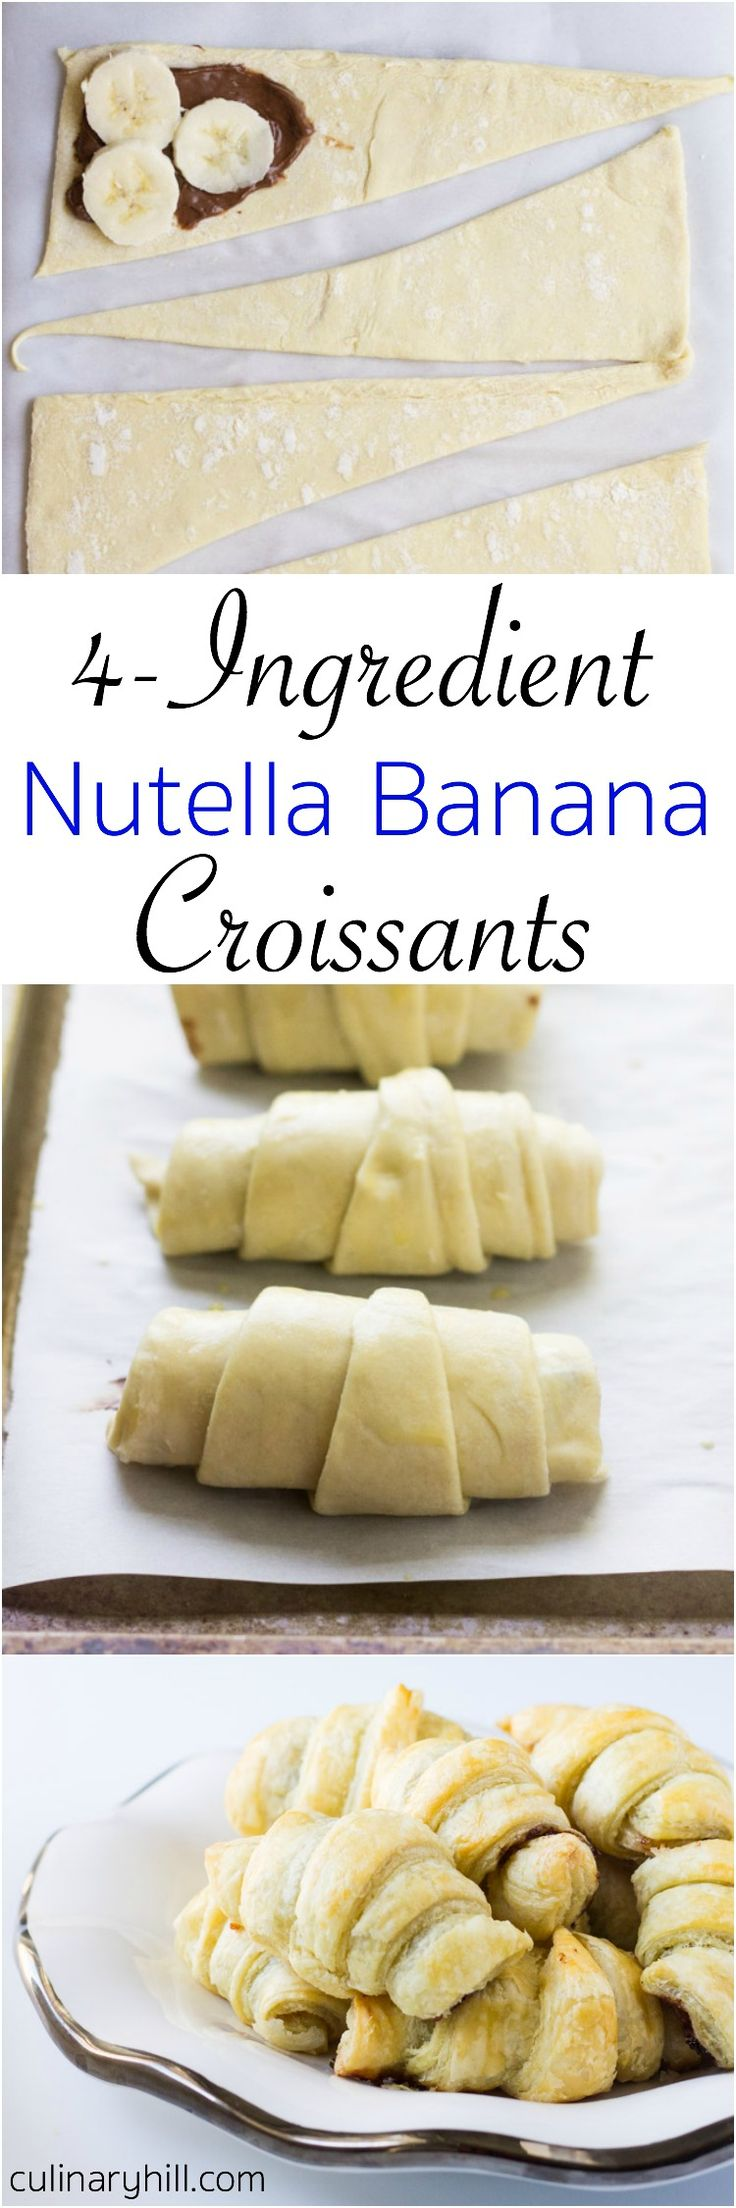 4-ingredient Banana Nutella Croissants are a simple yet luscious treat for breakfast, dessert, or any time you need a treat.